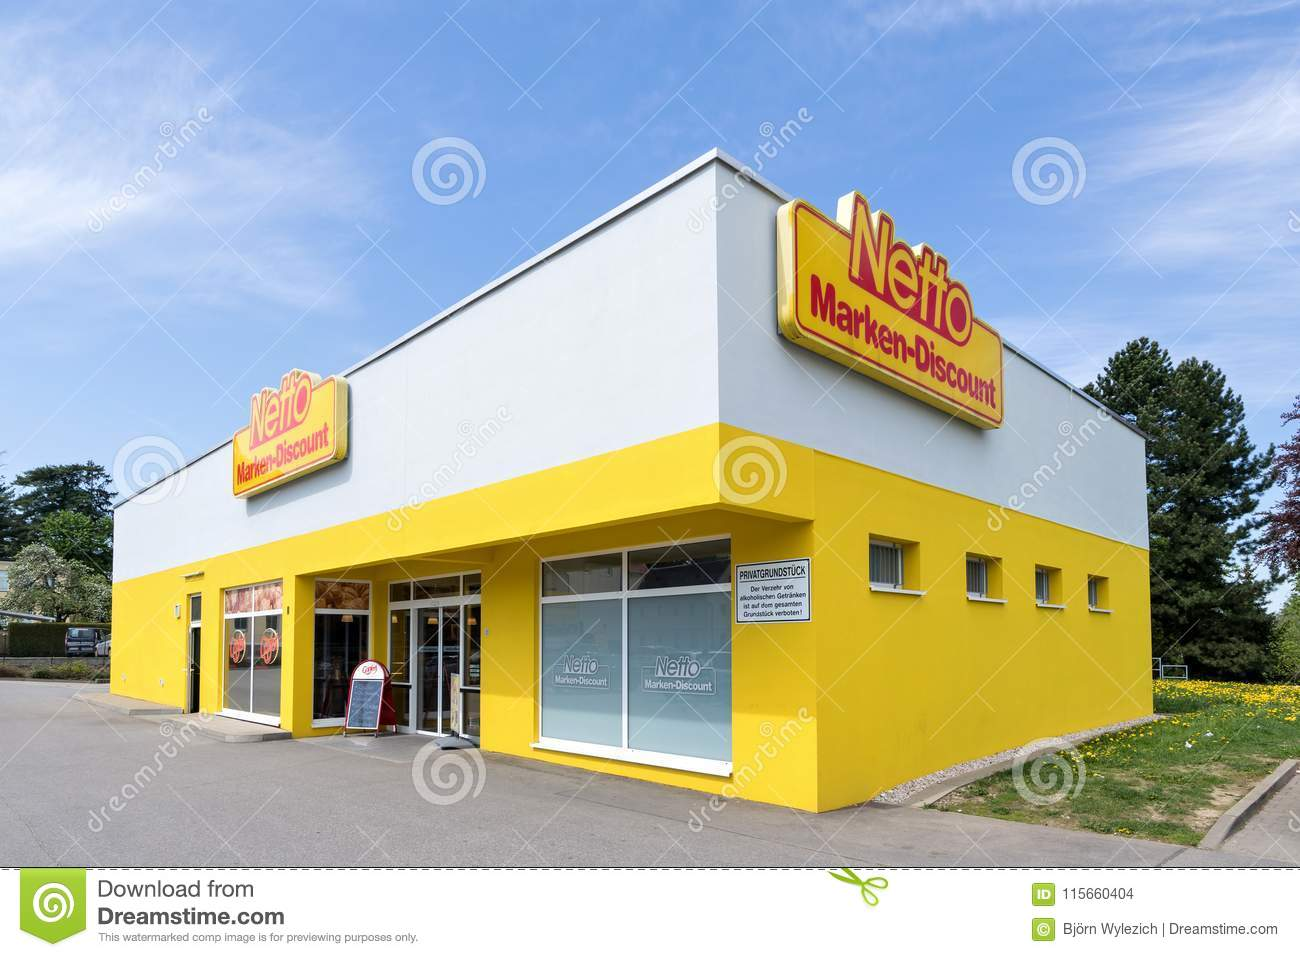 Netto Marken-Discount Branch Editorial Stock Image - Image of ...